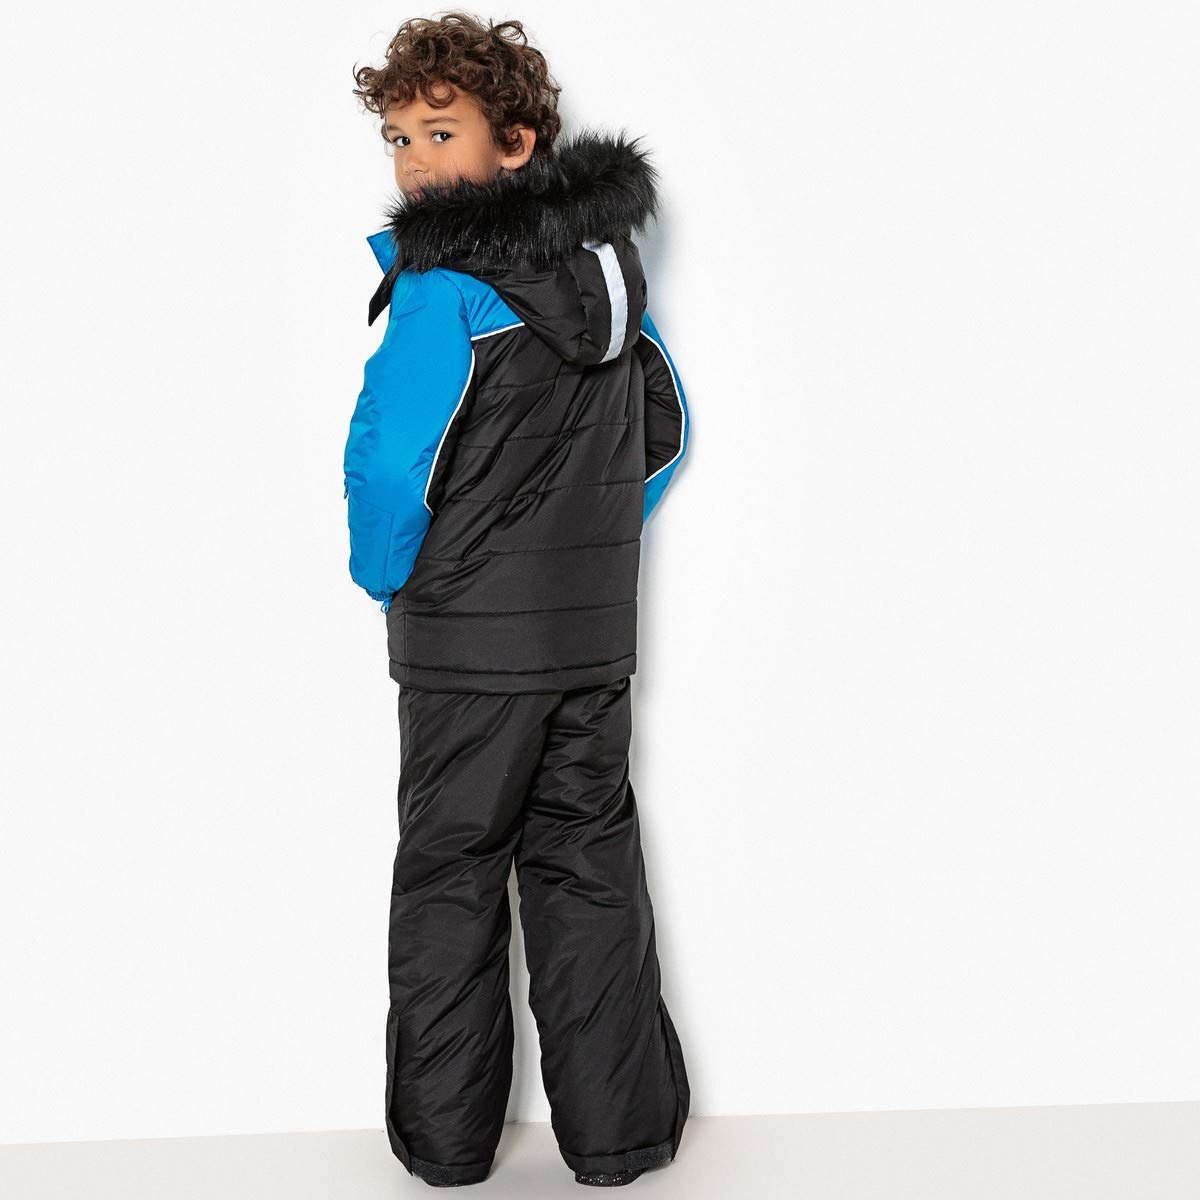 La Redoute Collections Big Boys Ski Jacket, 3-16 Years Blue Size 3 Years by La Redoute (Image #3)